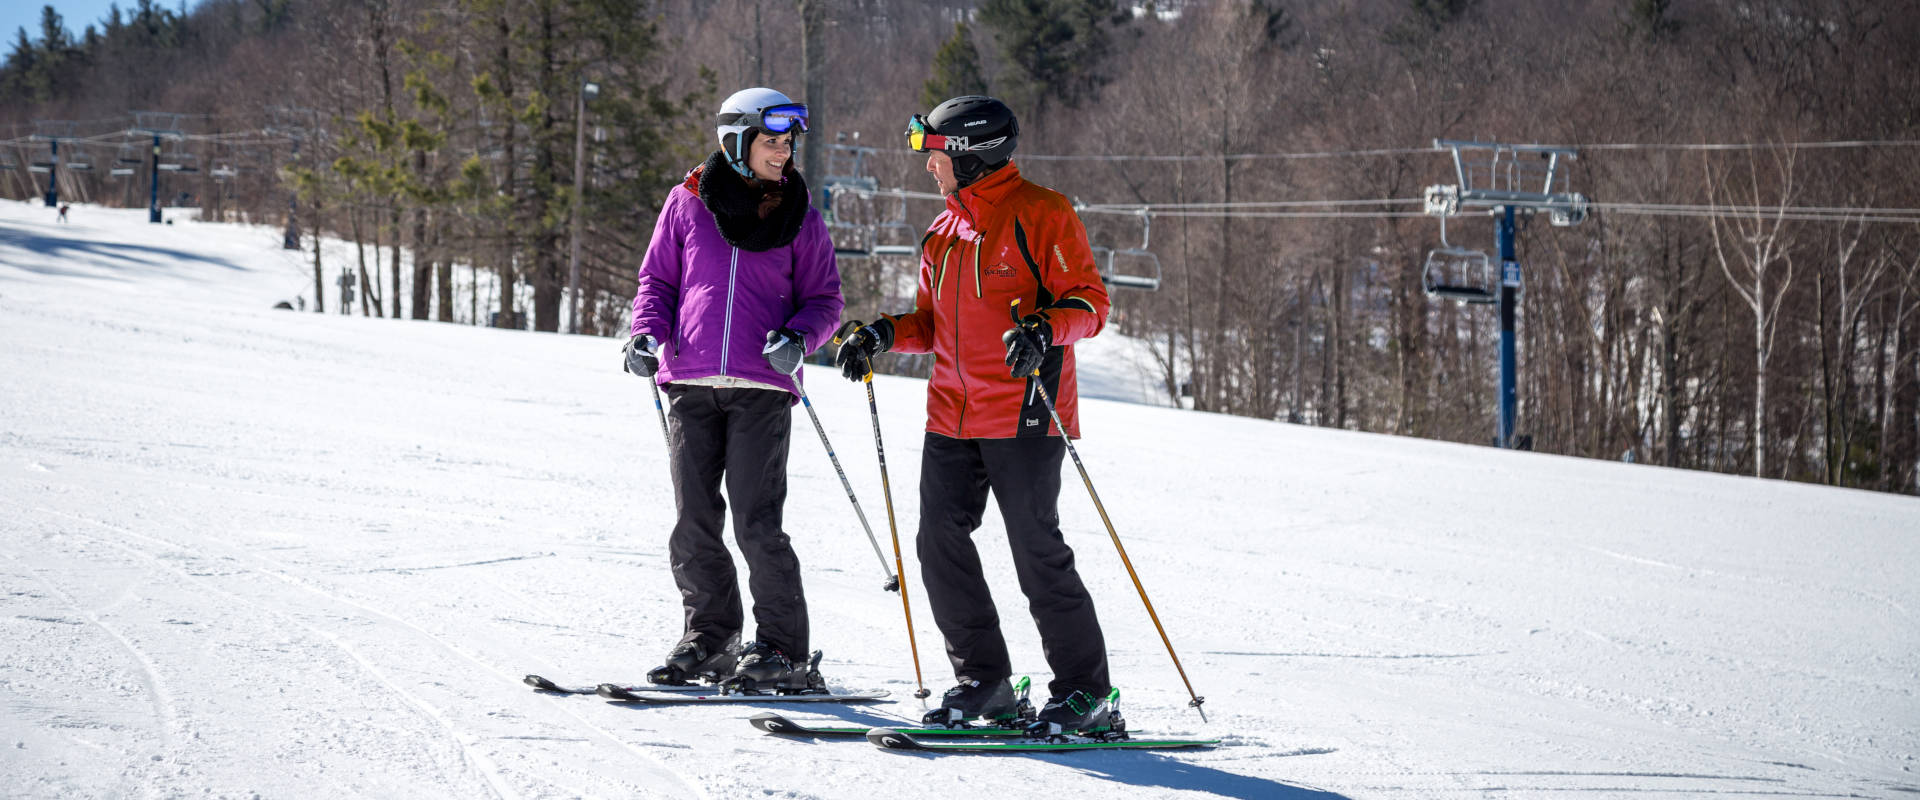 Sign up For Our Instructor Training Program, Get Paid to Ski or Ride